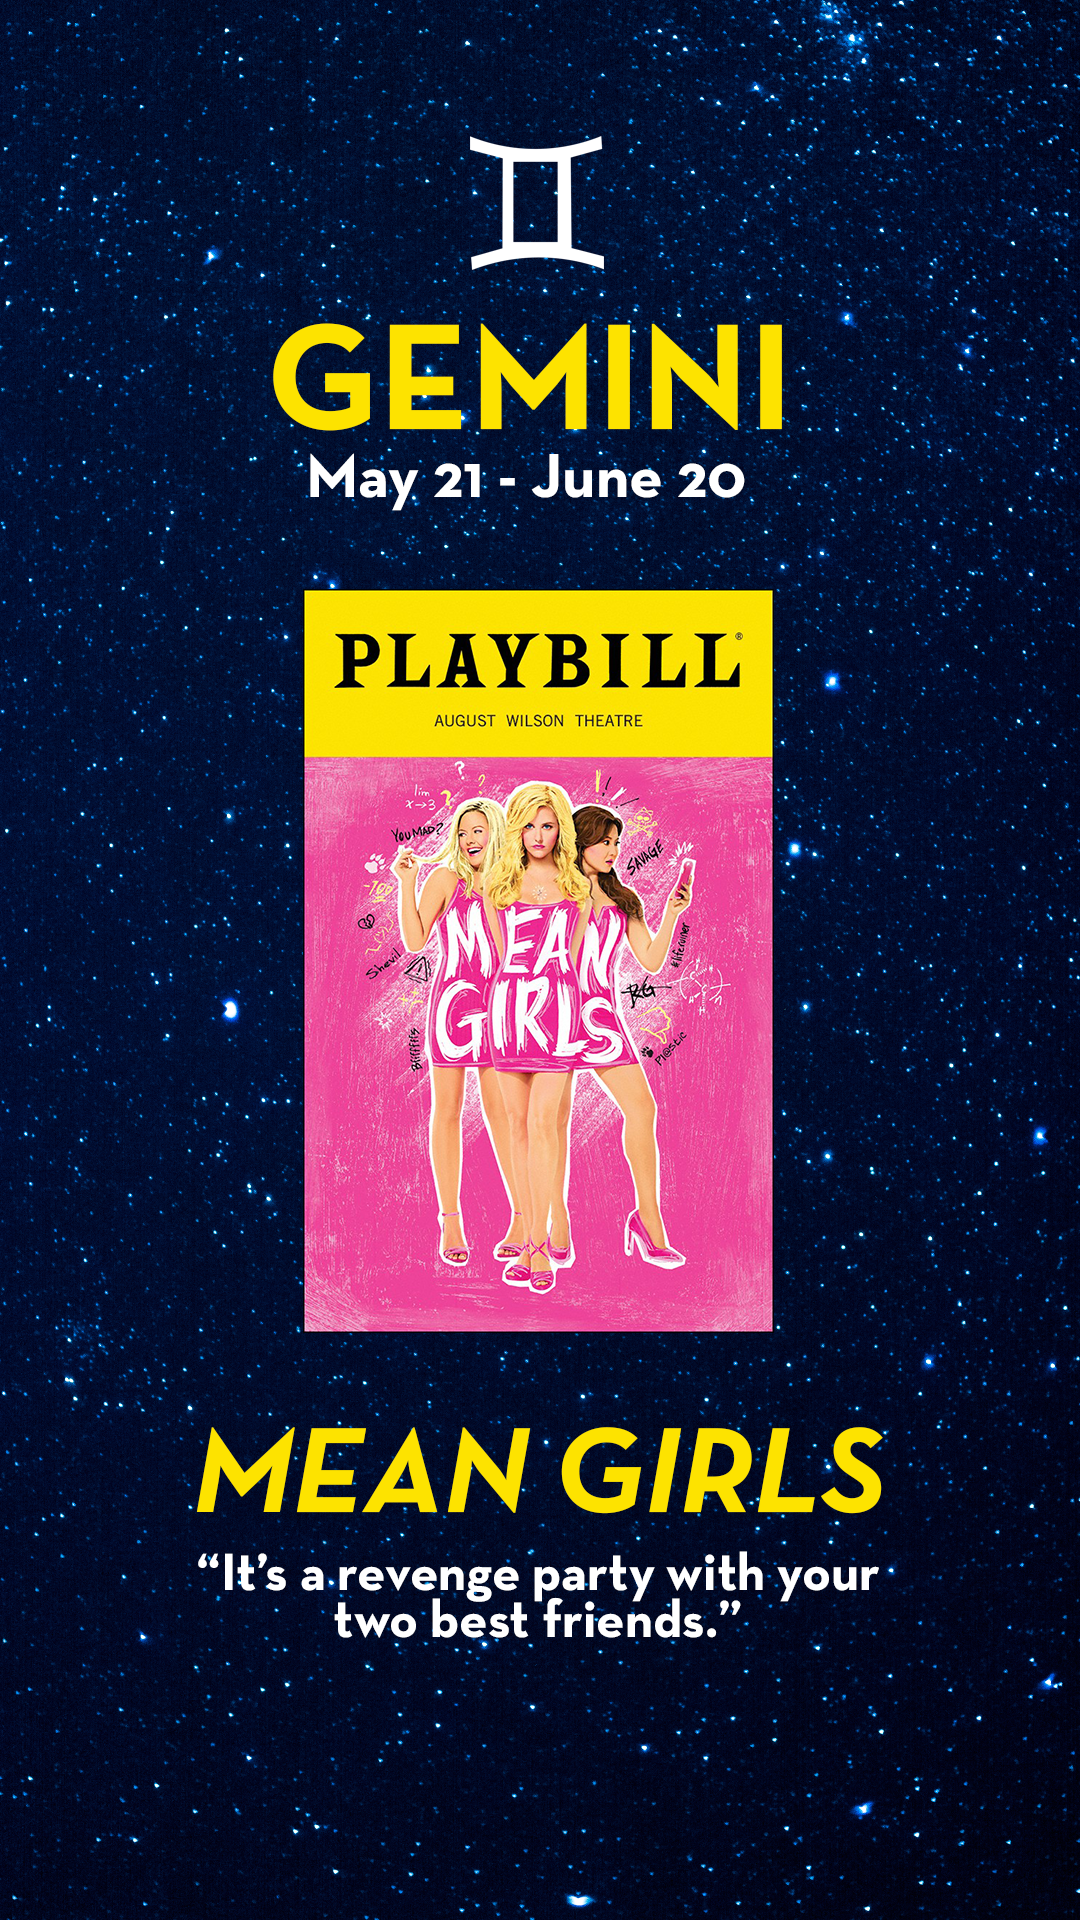 Pin By Playbill On Broadway Astrology Mean Girls Playbill Gemini